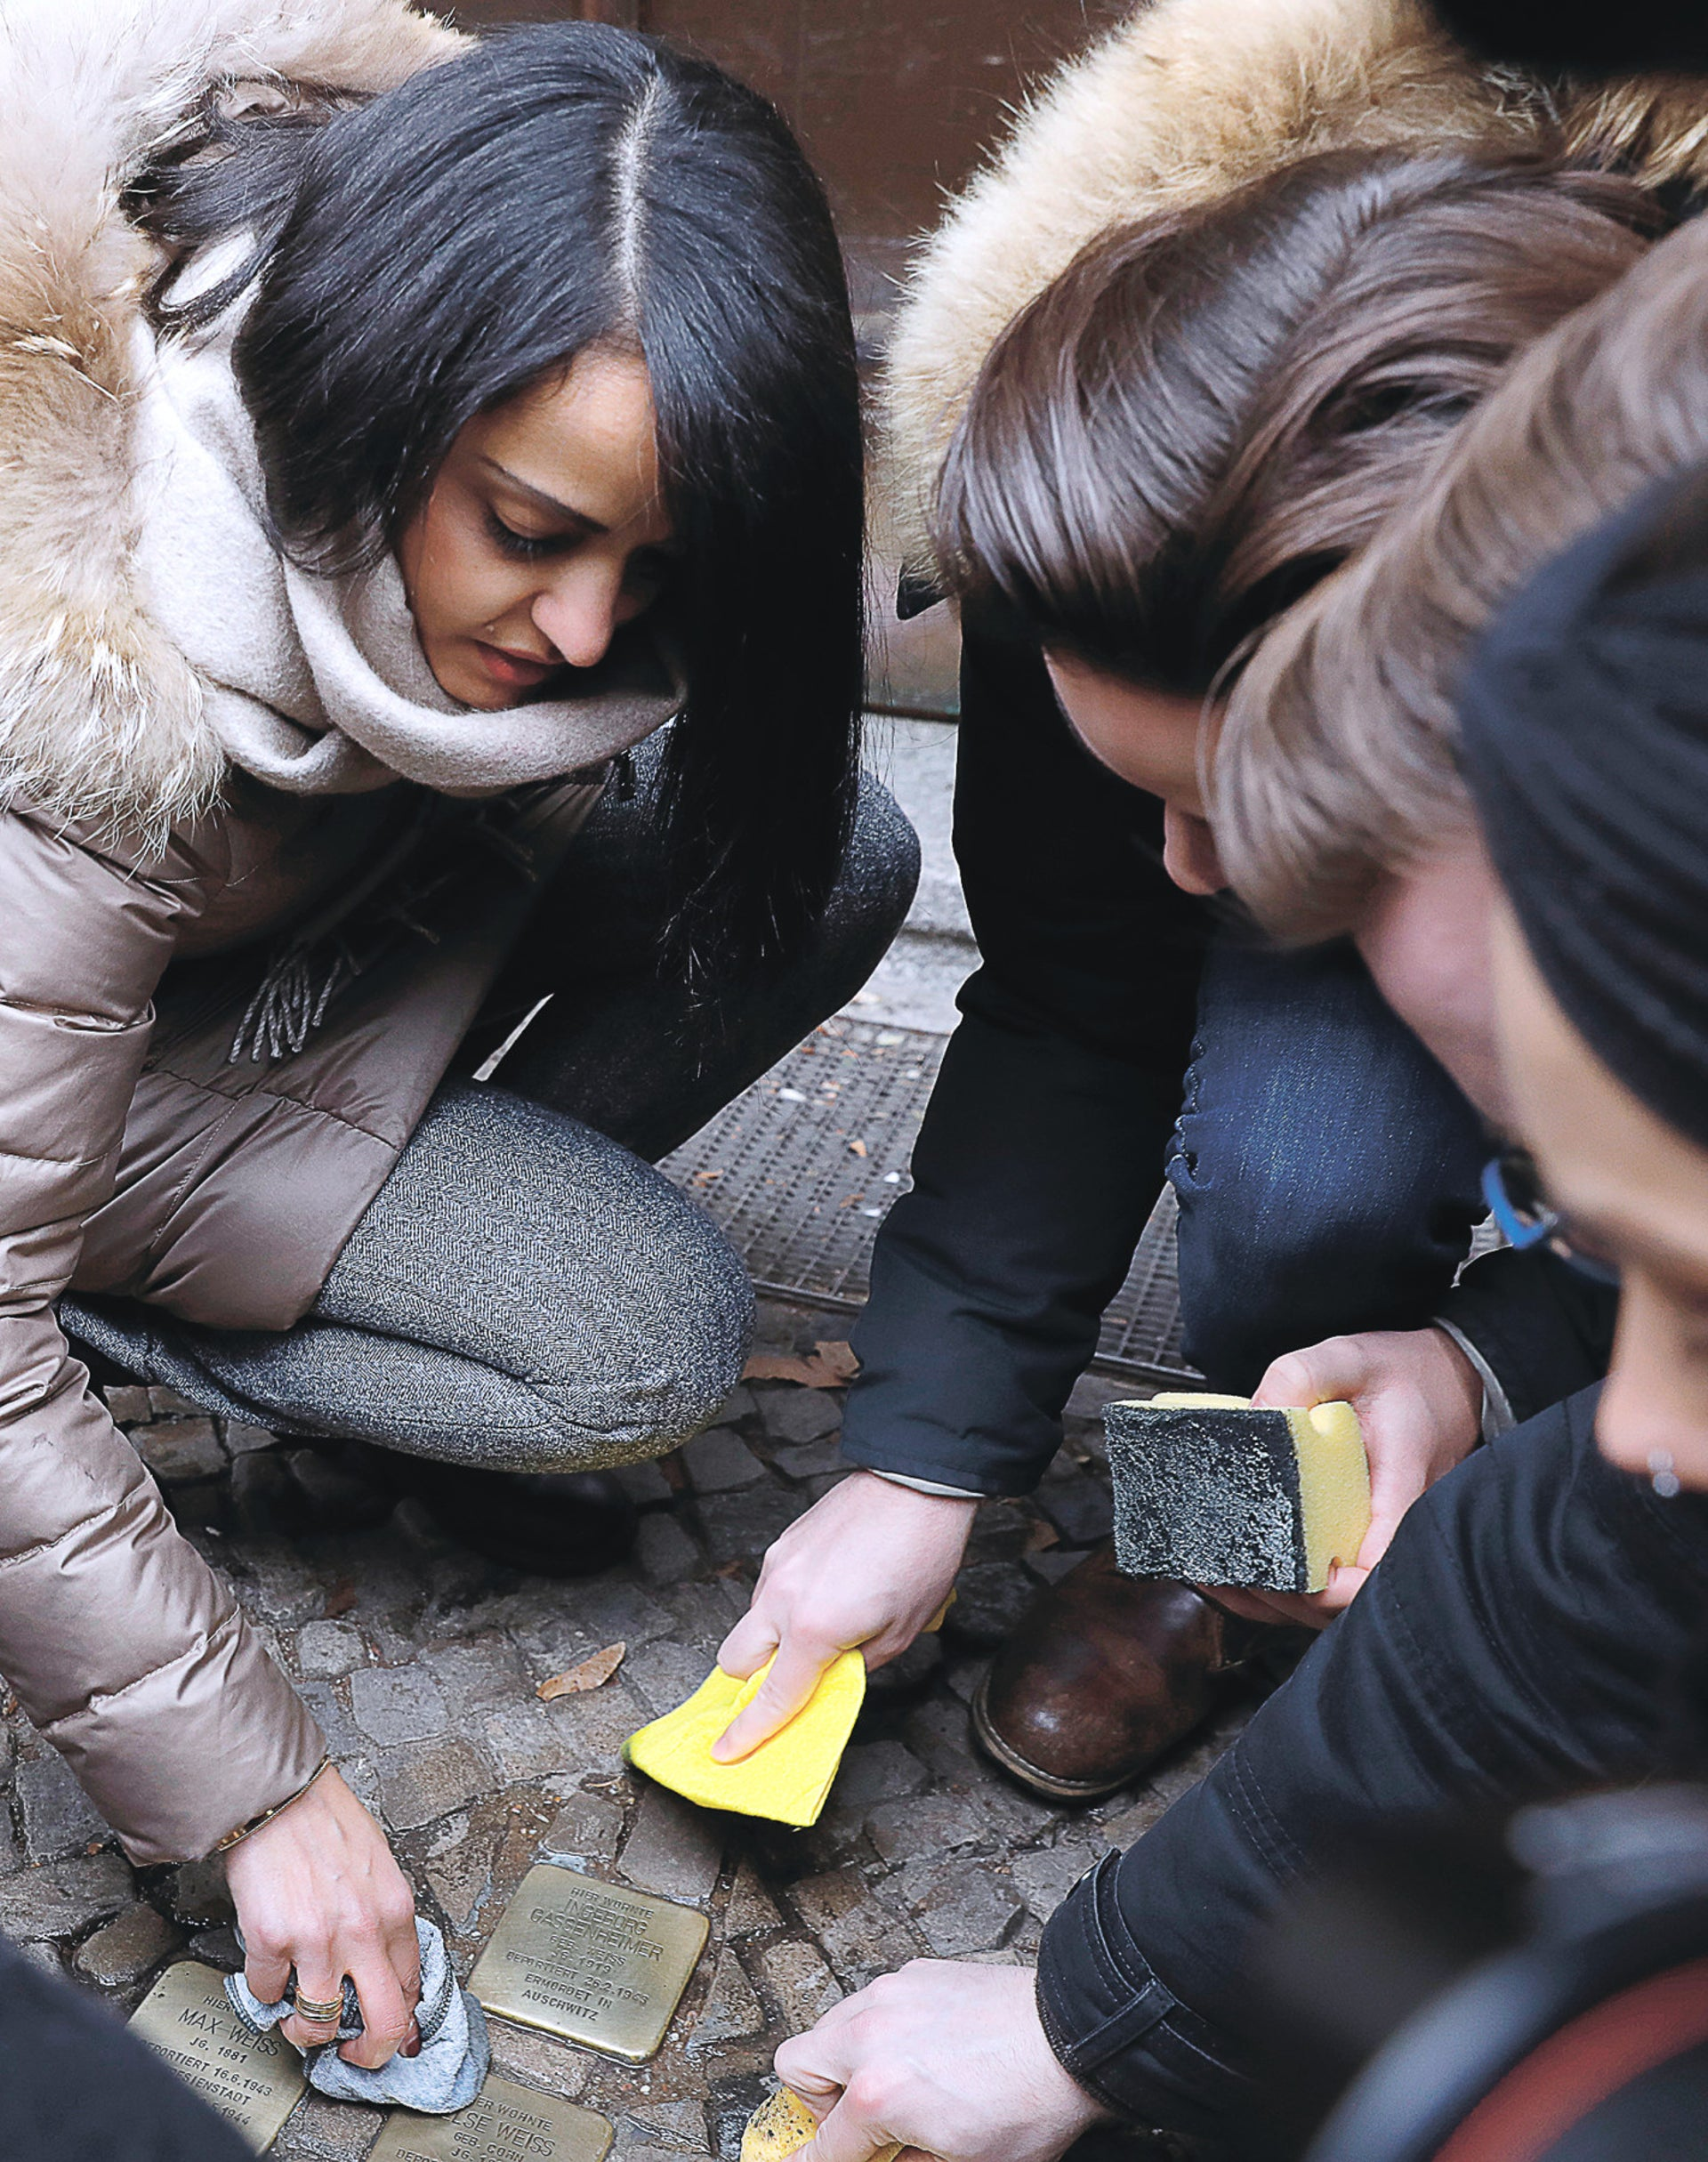 Sawsan Chebli cleaning Stolpersteine memorials to Jewish Holocaust victims, in Berlin last year.